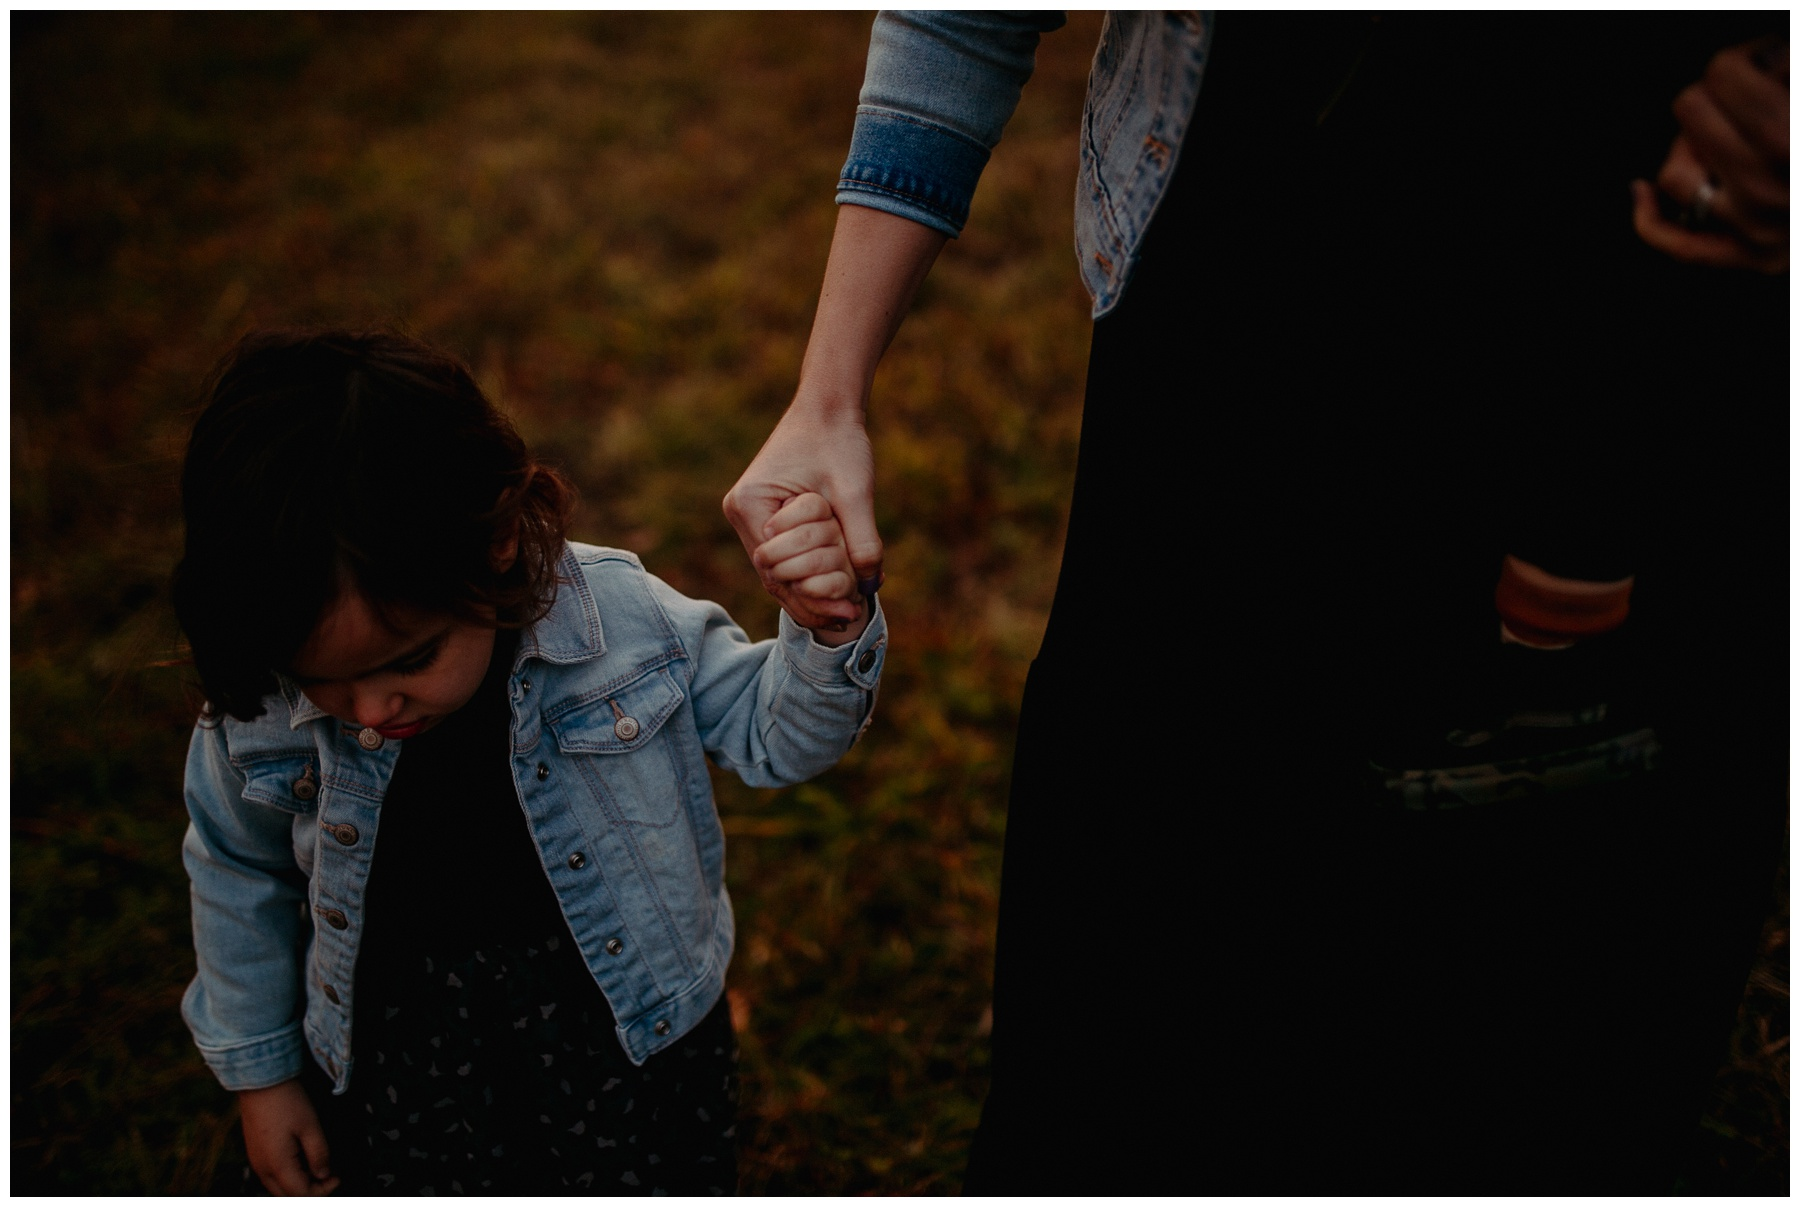 kerry ford photography - fall autumn family session perth011.jpg